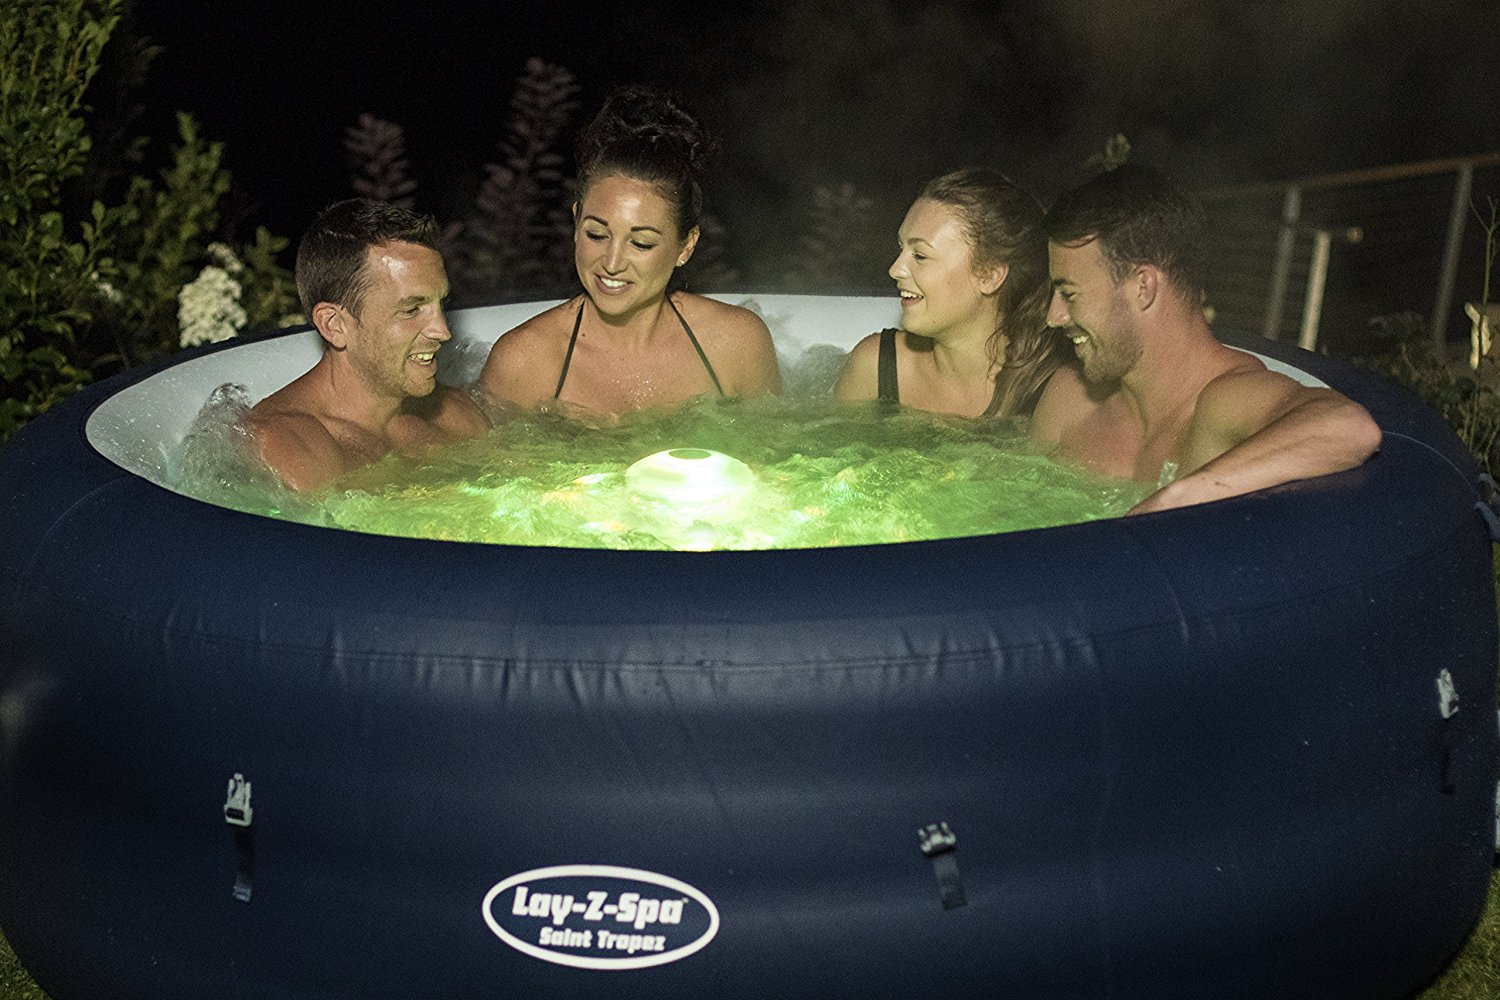 Lay Z Spa Saint Tropez Inflatable Hot Tub Review